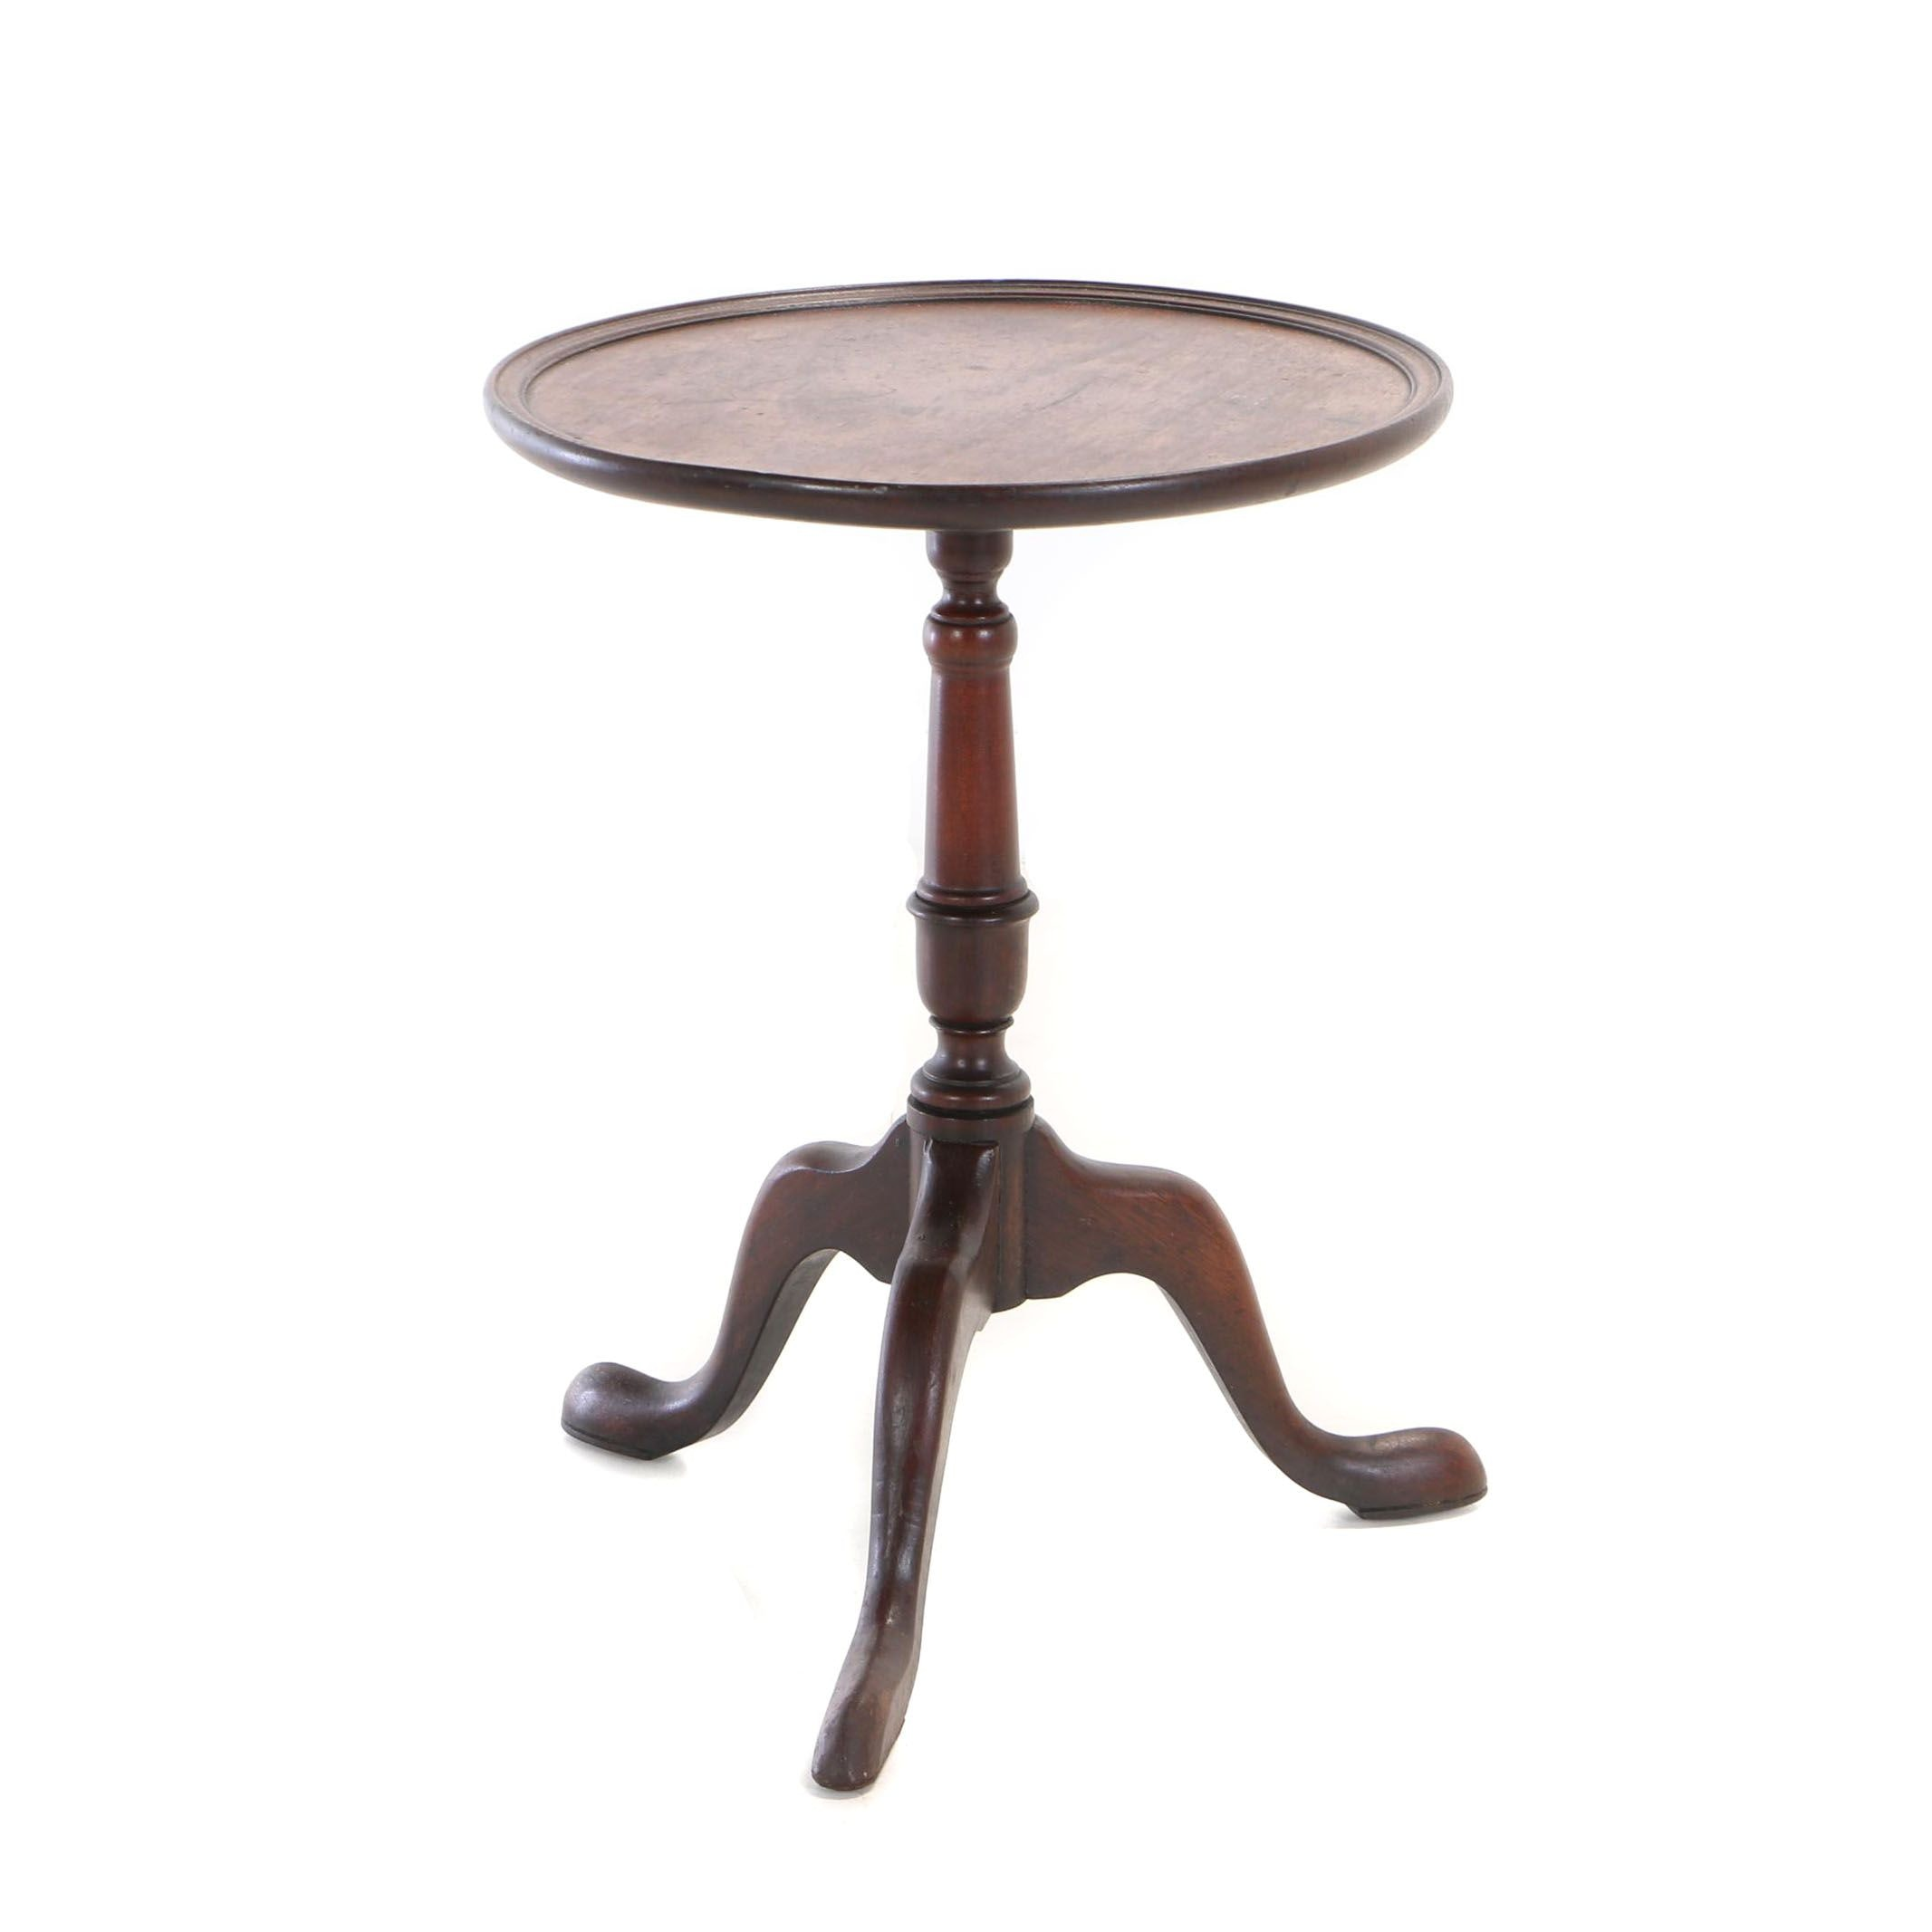 George III Style Mahogany Tripod Table by Baker Furniture, 20th Century